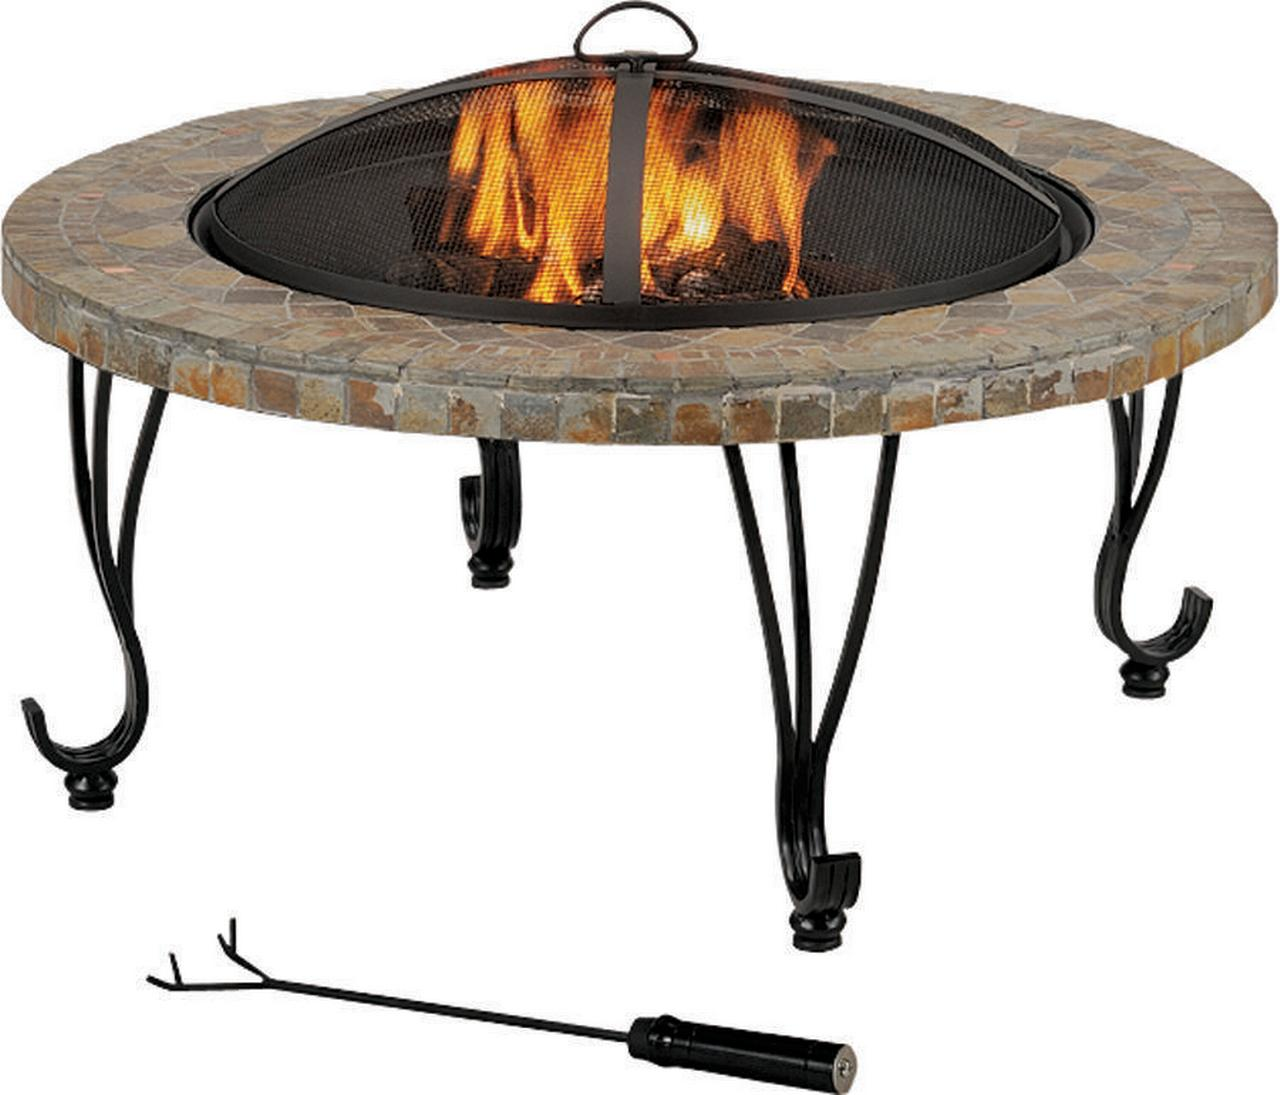 ProSource FTB-121 Round Outdoor Firepit With Slate Top by Mintcraft